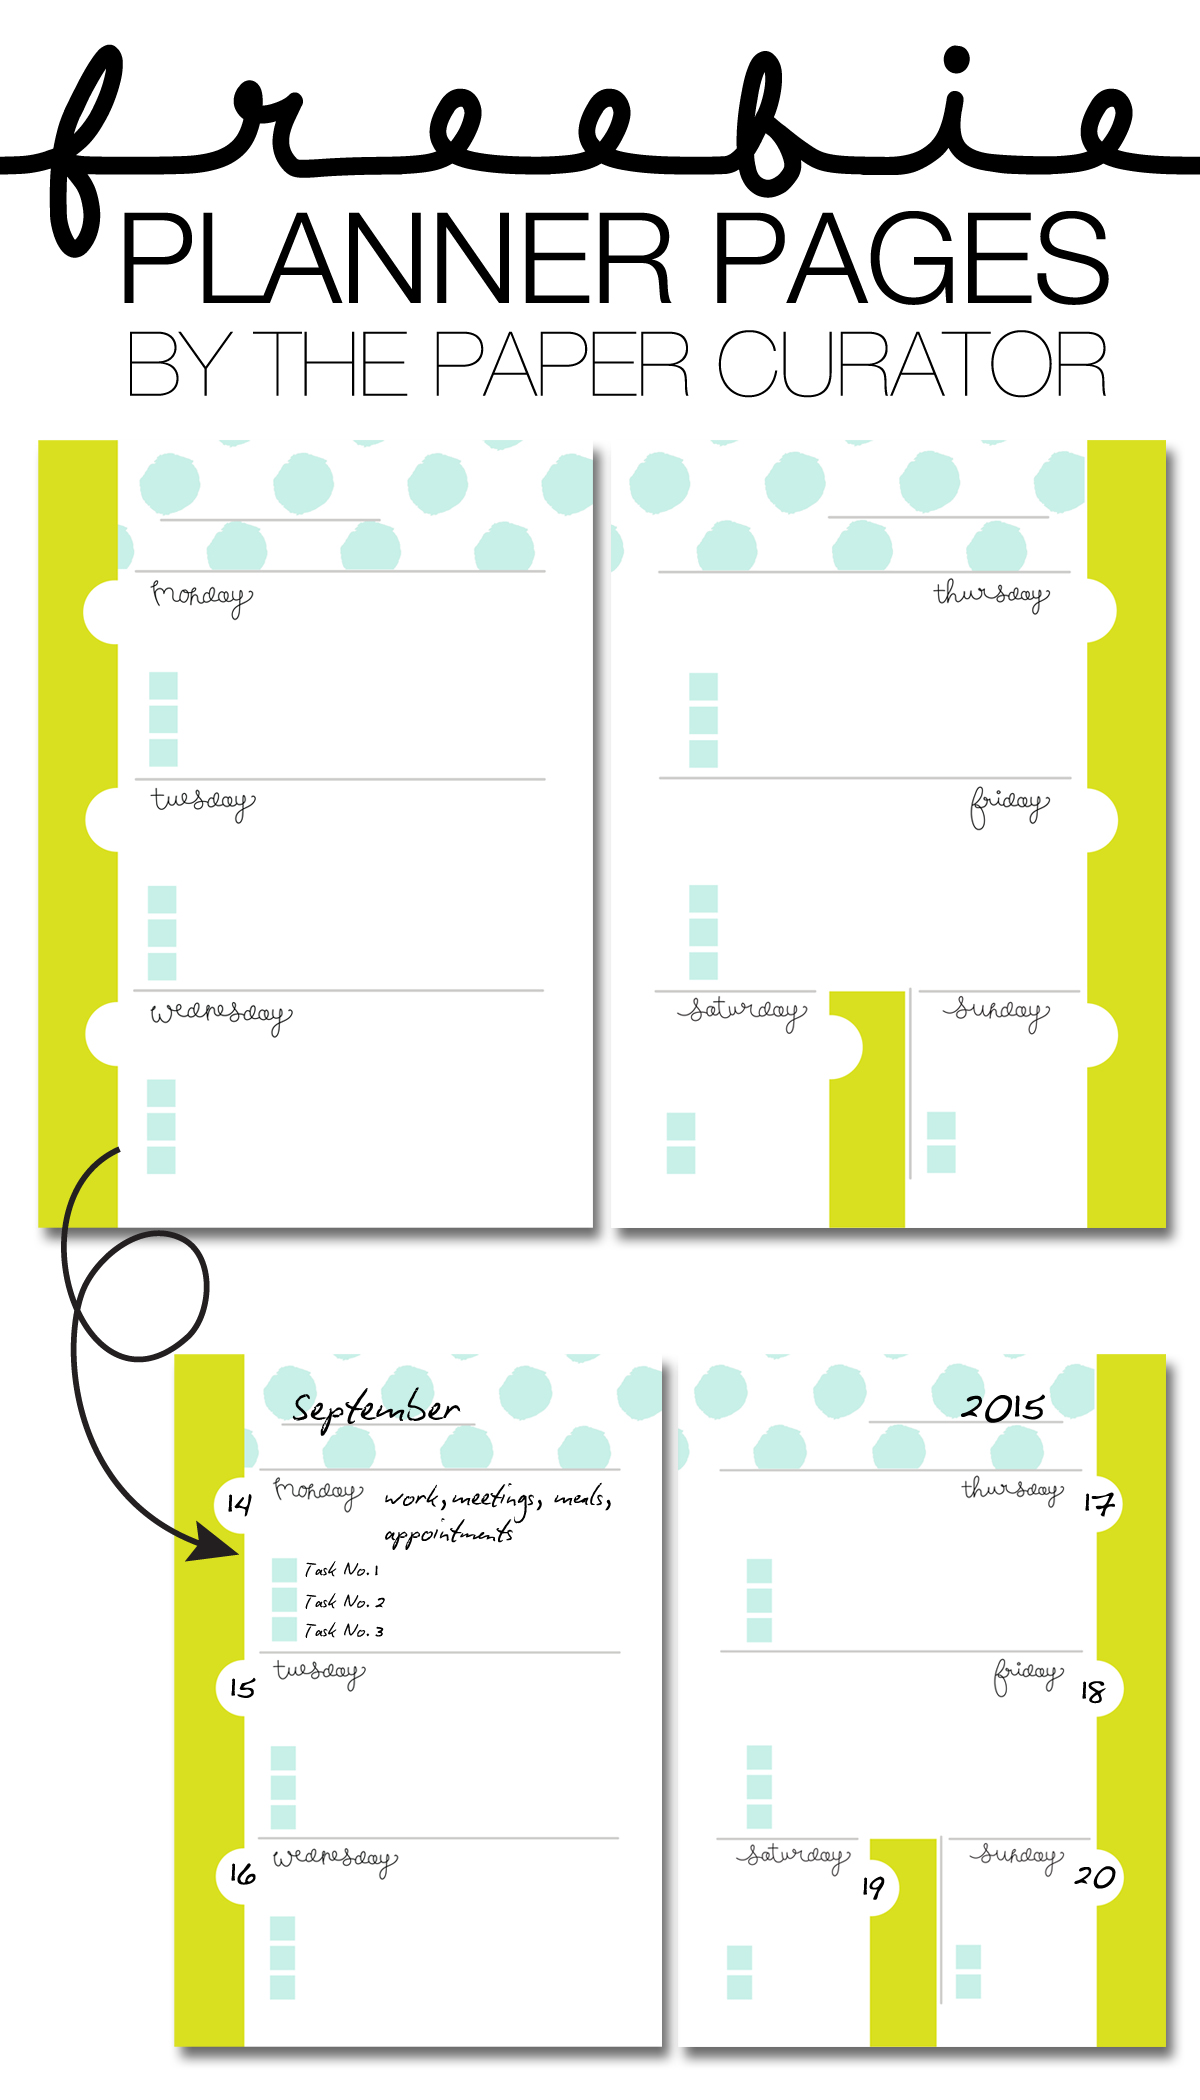 FREEBIE PLANNER PAGE PRINTABLES BY THE PAPER CURATOR